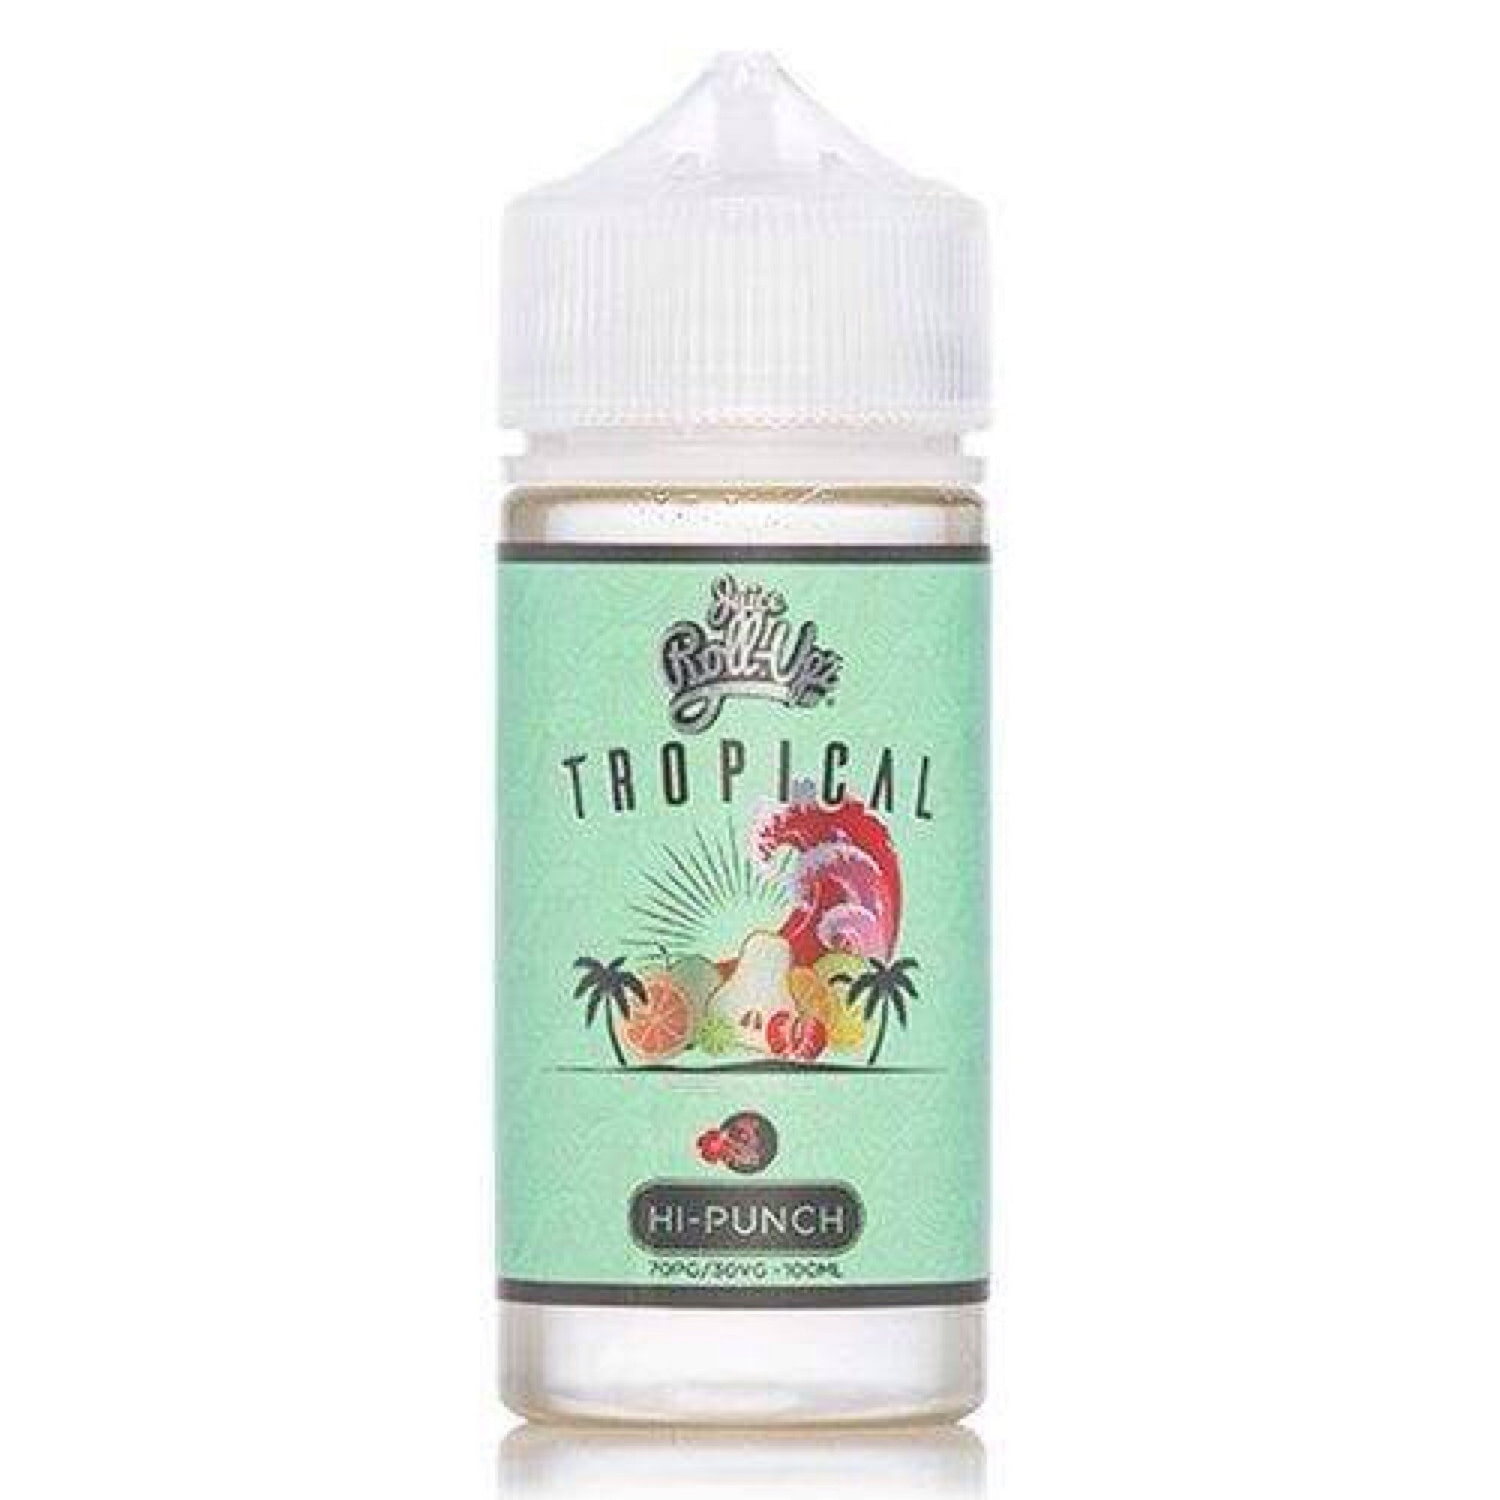 Juice Roll UPZ Tropical Hipunch